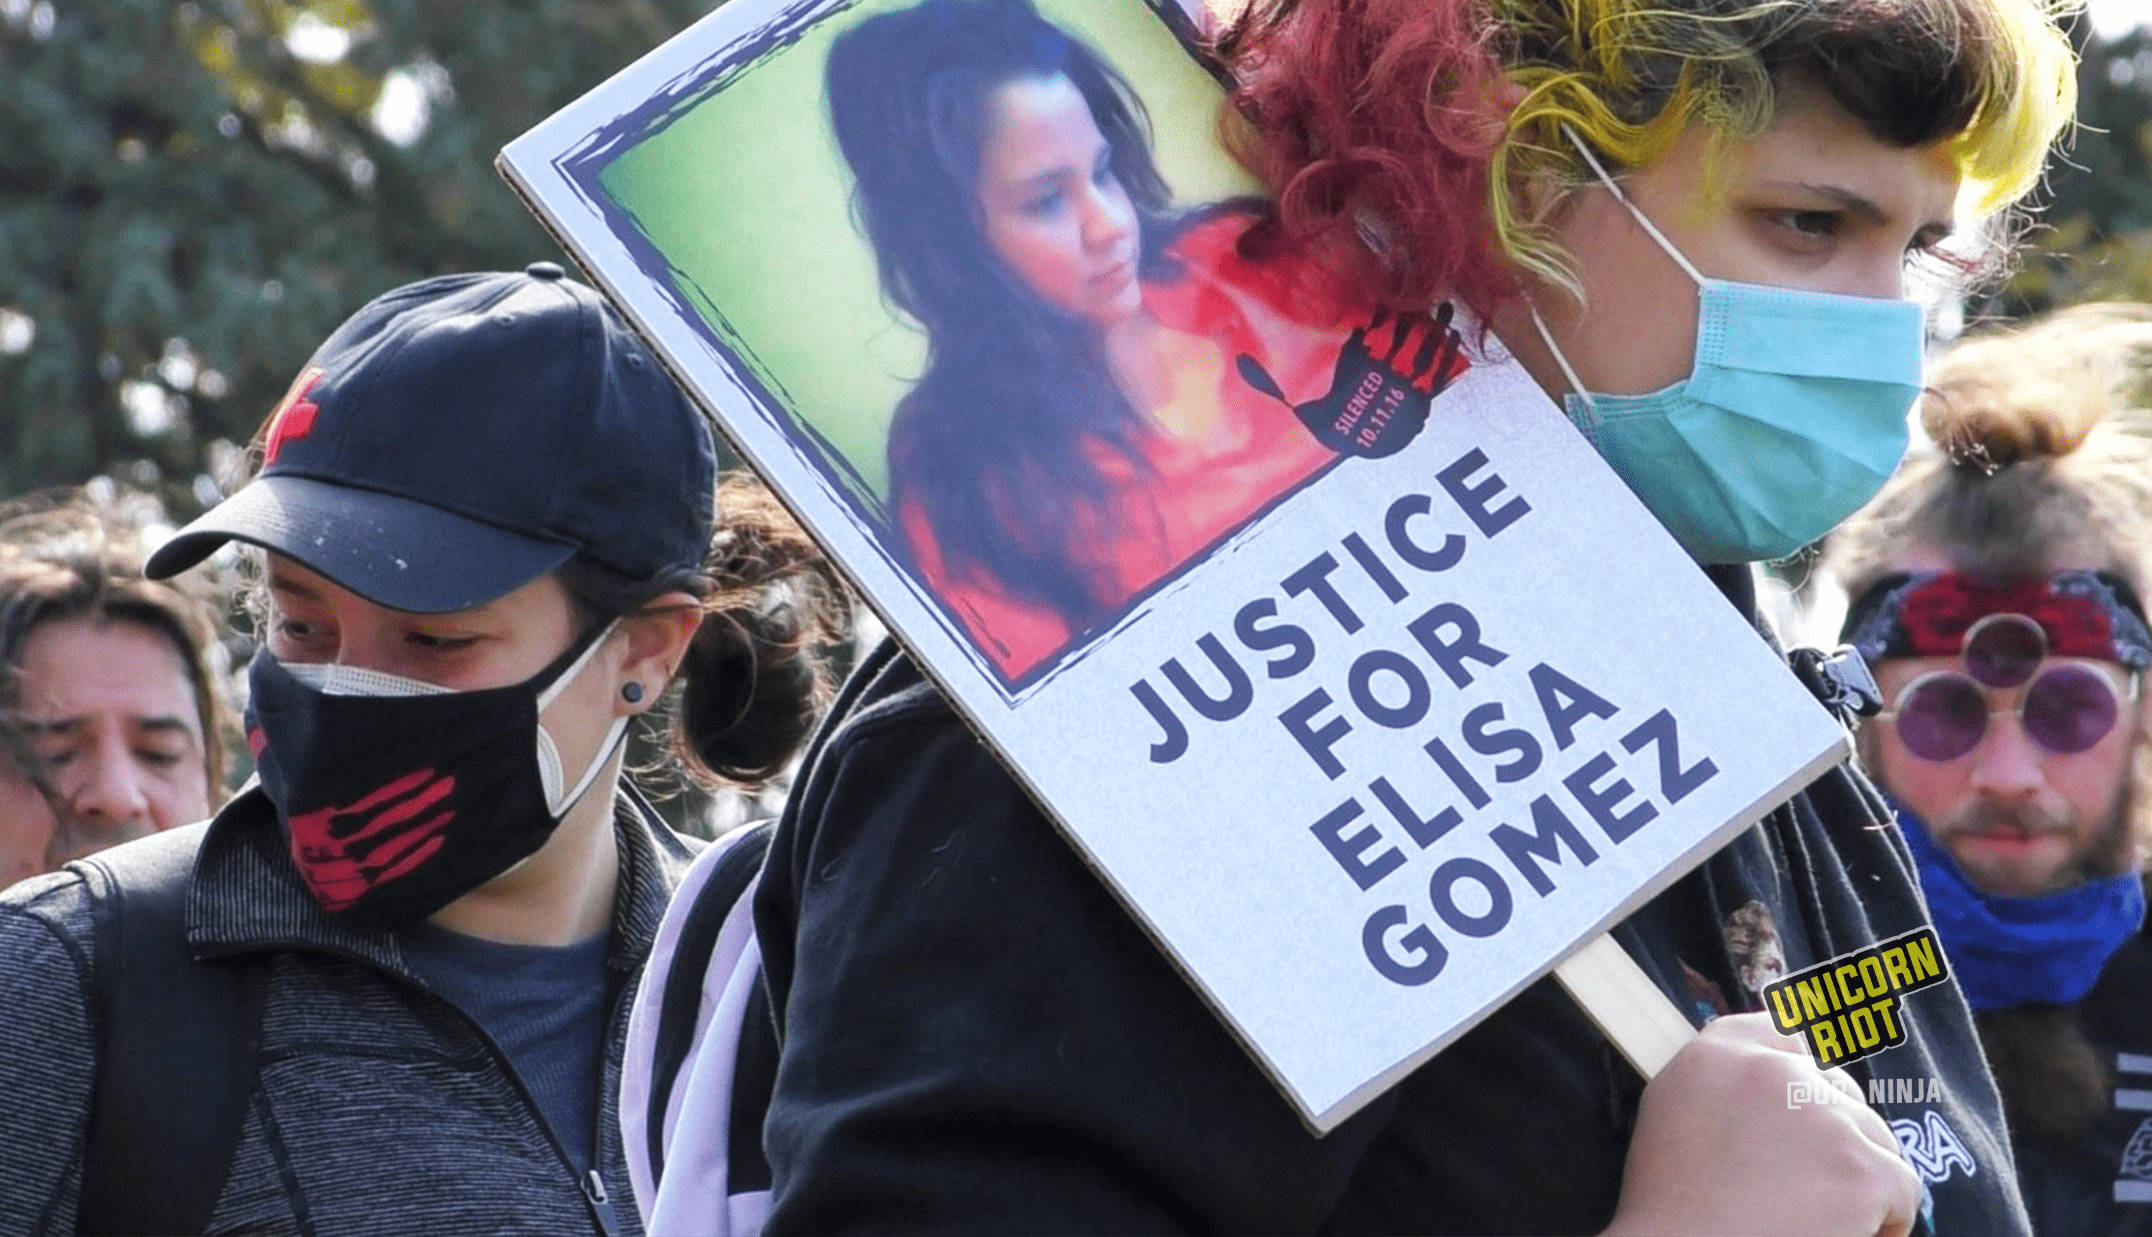 "image: Masked protester holds ""Justice For Elisa Gomez"" protest sign. The sign has a picture of Elisa Gomez with long dark hair and an orange blouse, looking down and to the right. It also has an image of a black handprint with ""Silenced 10.11.16"" white text overlaid. The protester has on a blue medical facemask, is wearing a black sweatshirt and a purple backpack, and has shoulder-length slightly-curled hair that is dyed yellow and pink. They are looking to the right. Several other masked protesters are behind this person."